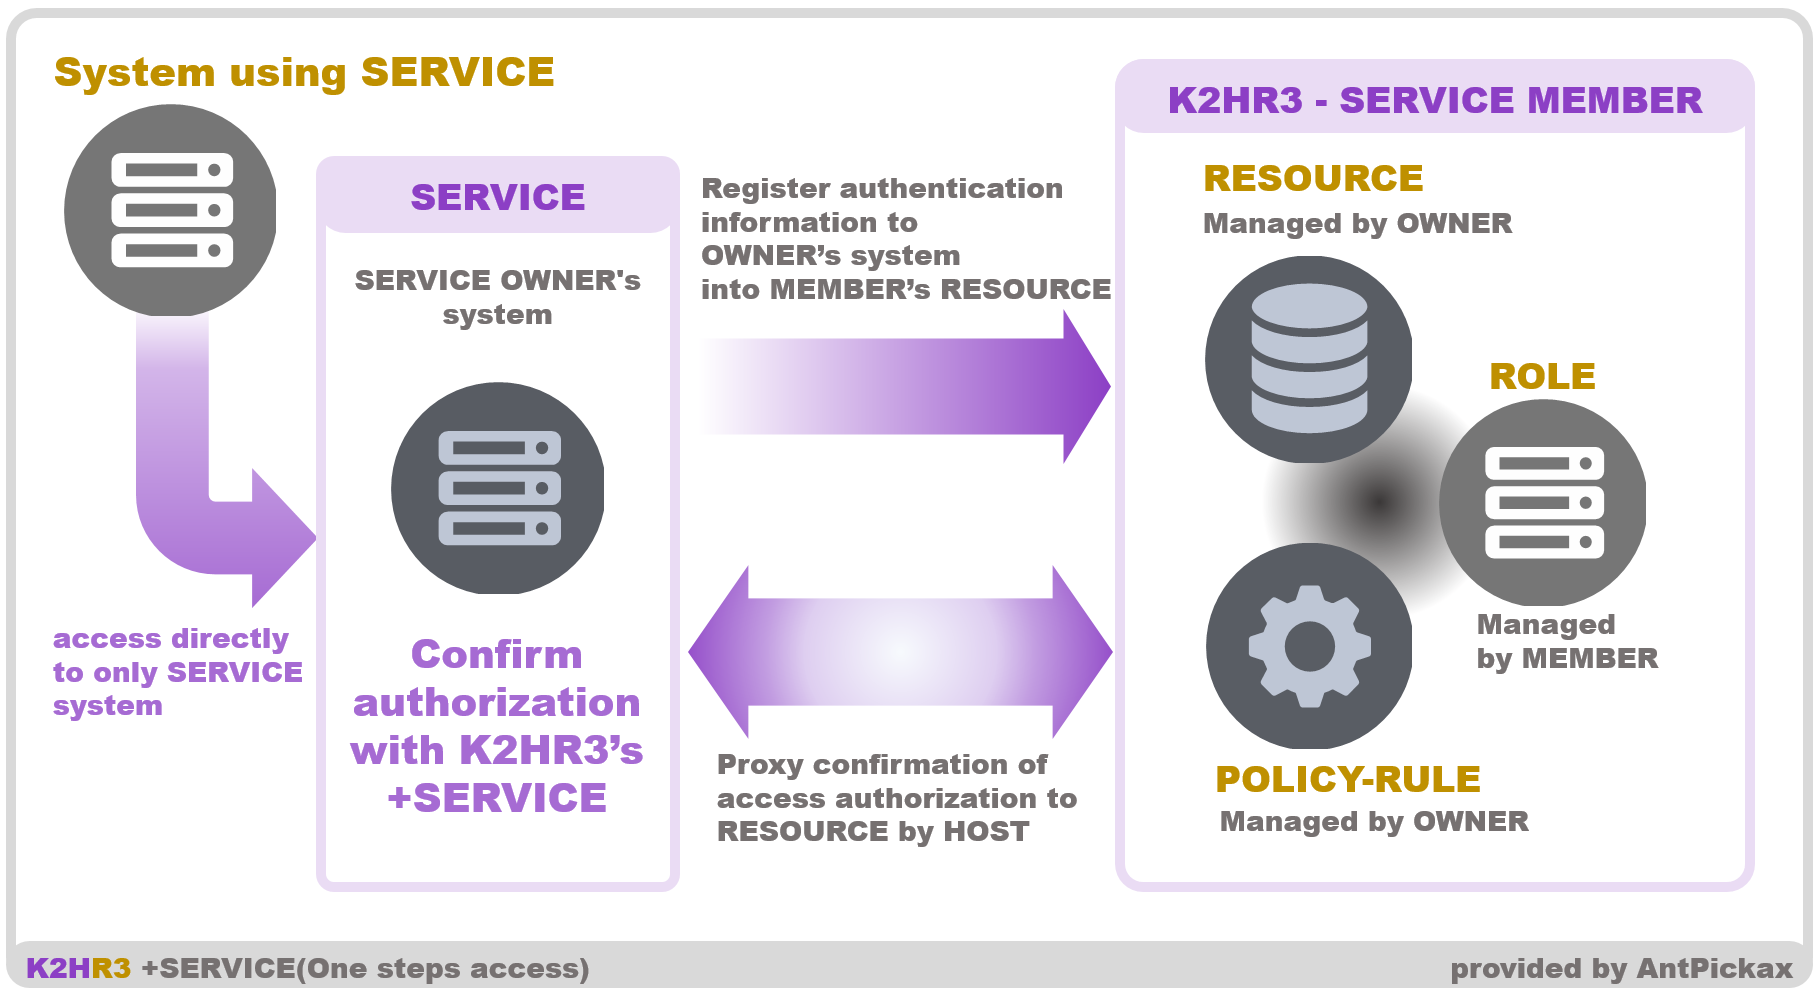 K2HR3 Usage RBAC - One step SERVICE Access